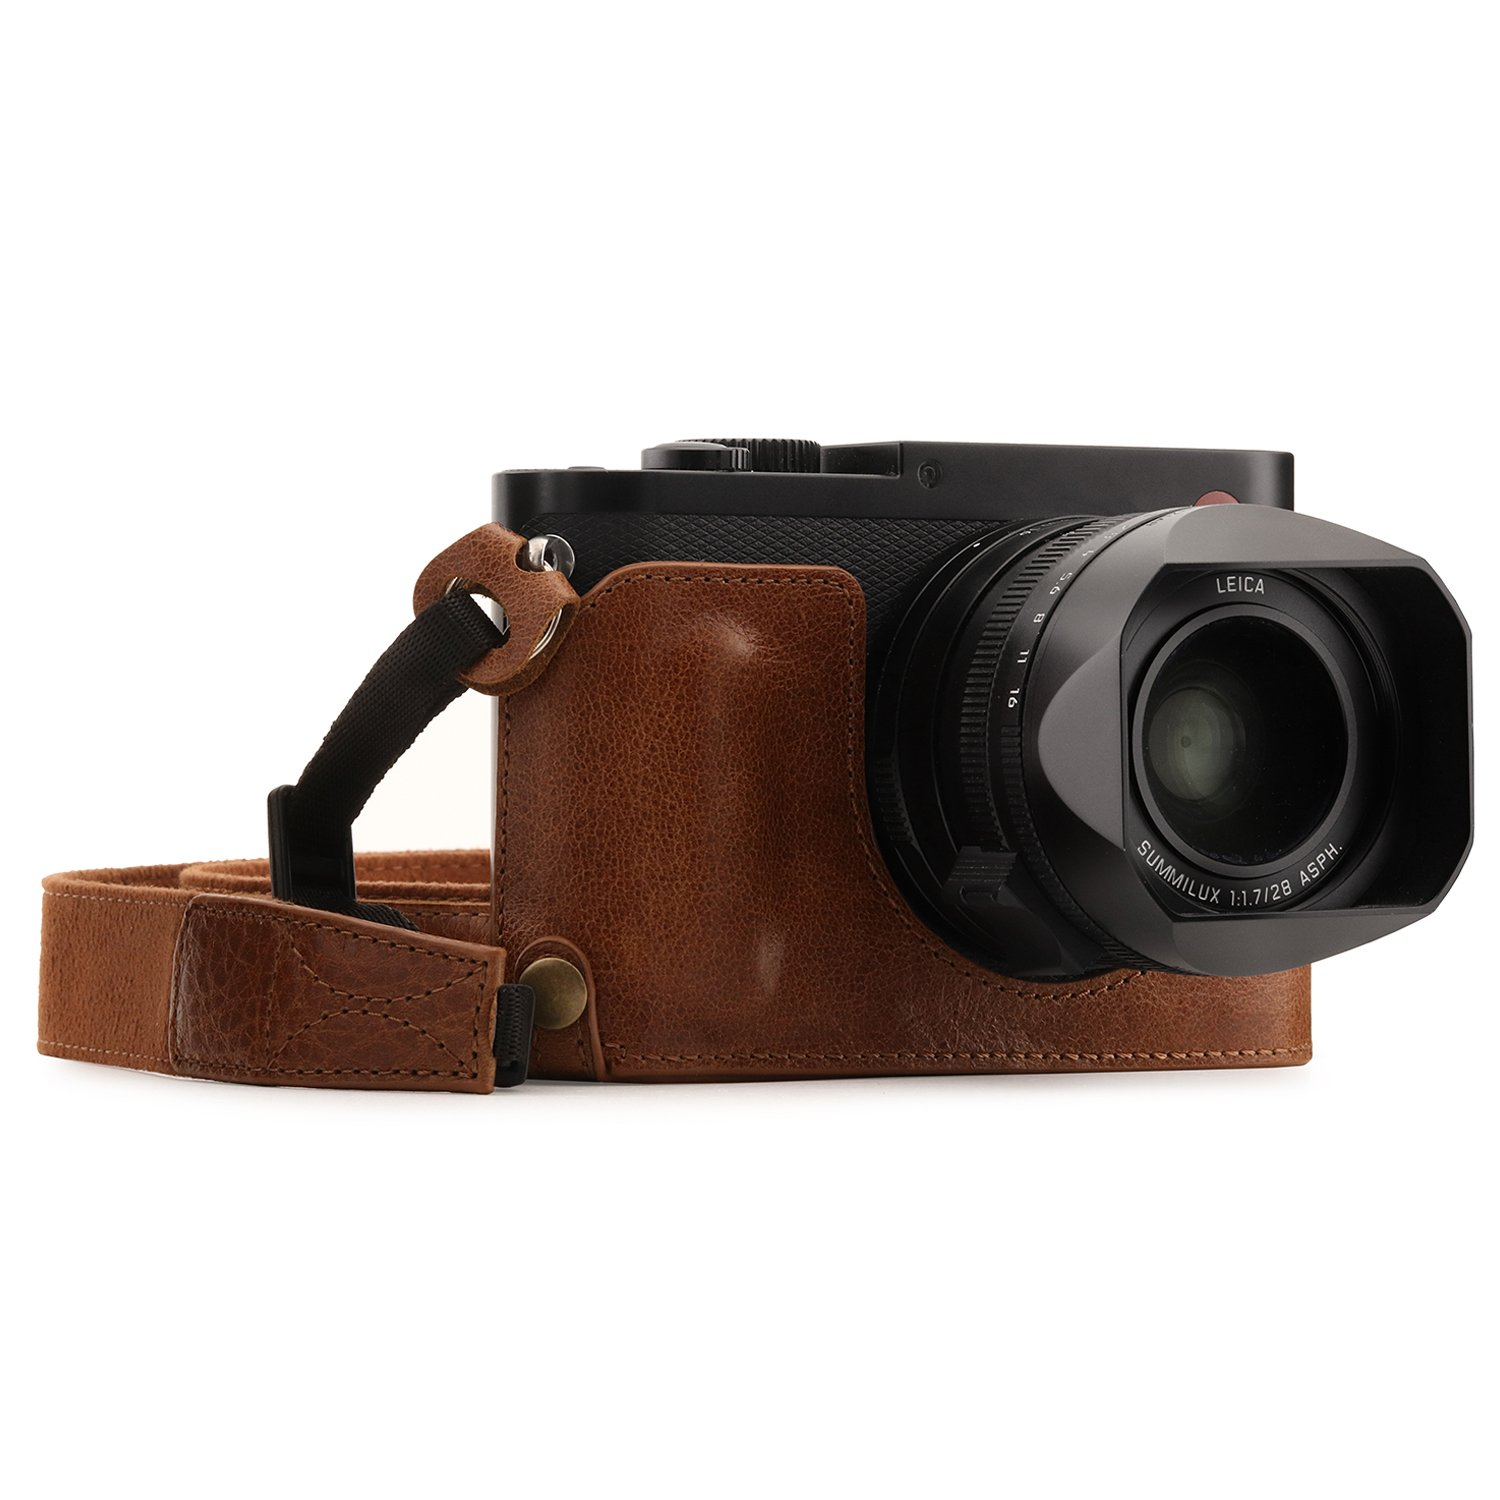 MegaGear Leica Q (Typ 116) Ever Ready Genuine Leather Camera Half Case and Strap, with Battery Access - Black MG1400